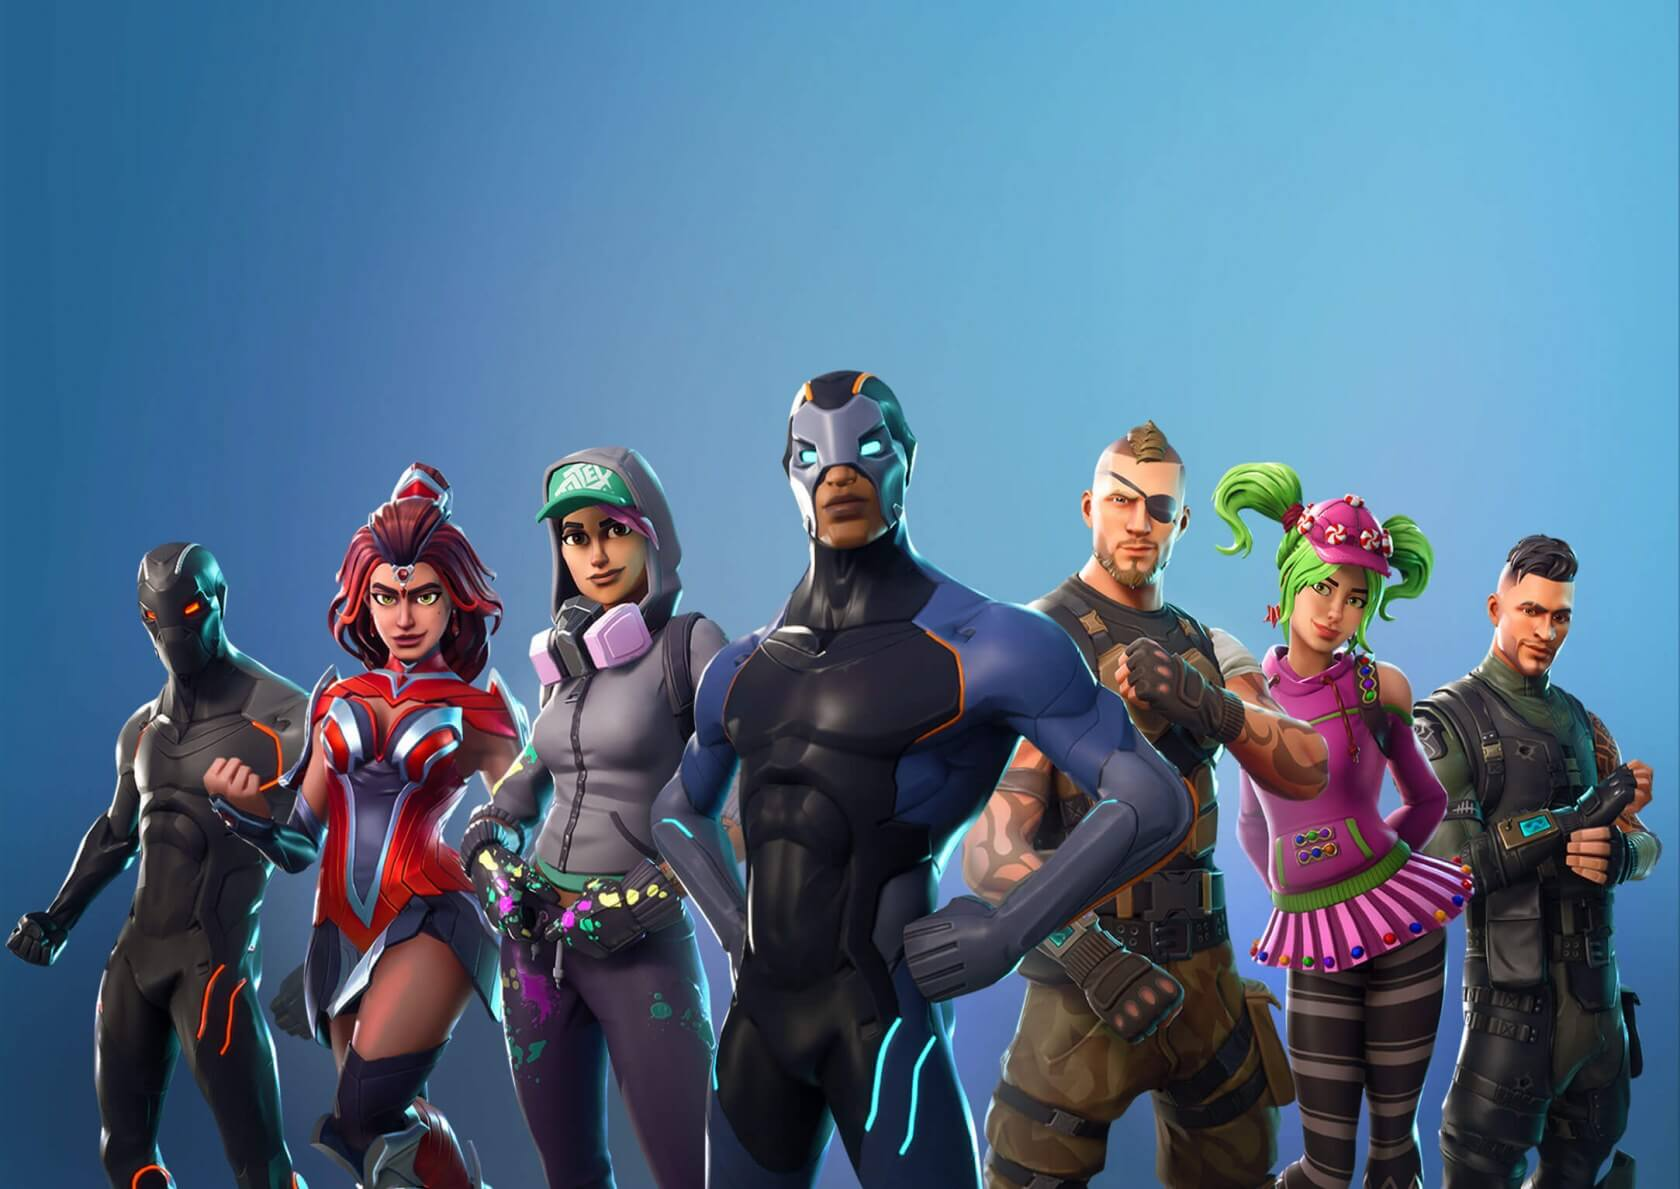 Beware: Fake Fortnite Android apps are floating around - TechSpot